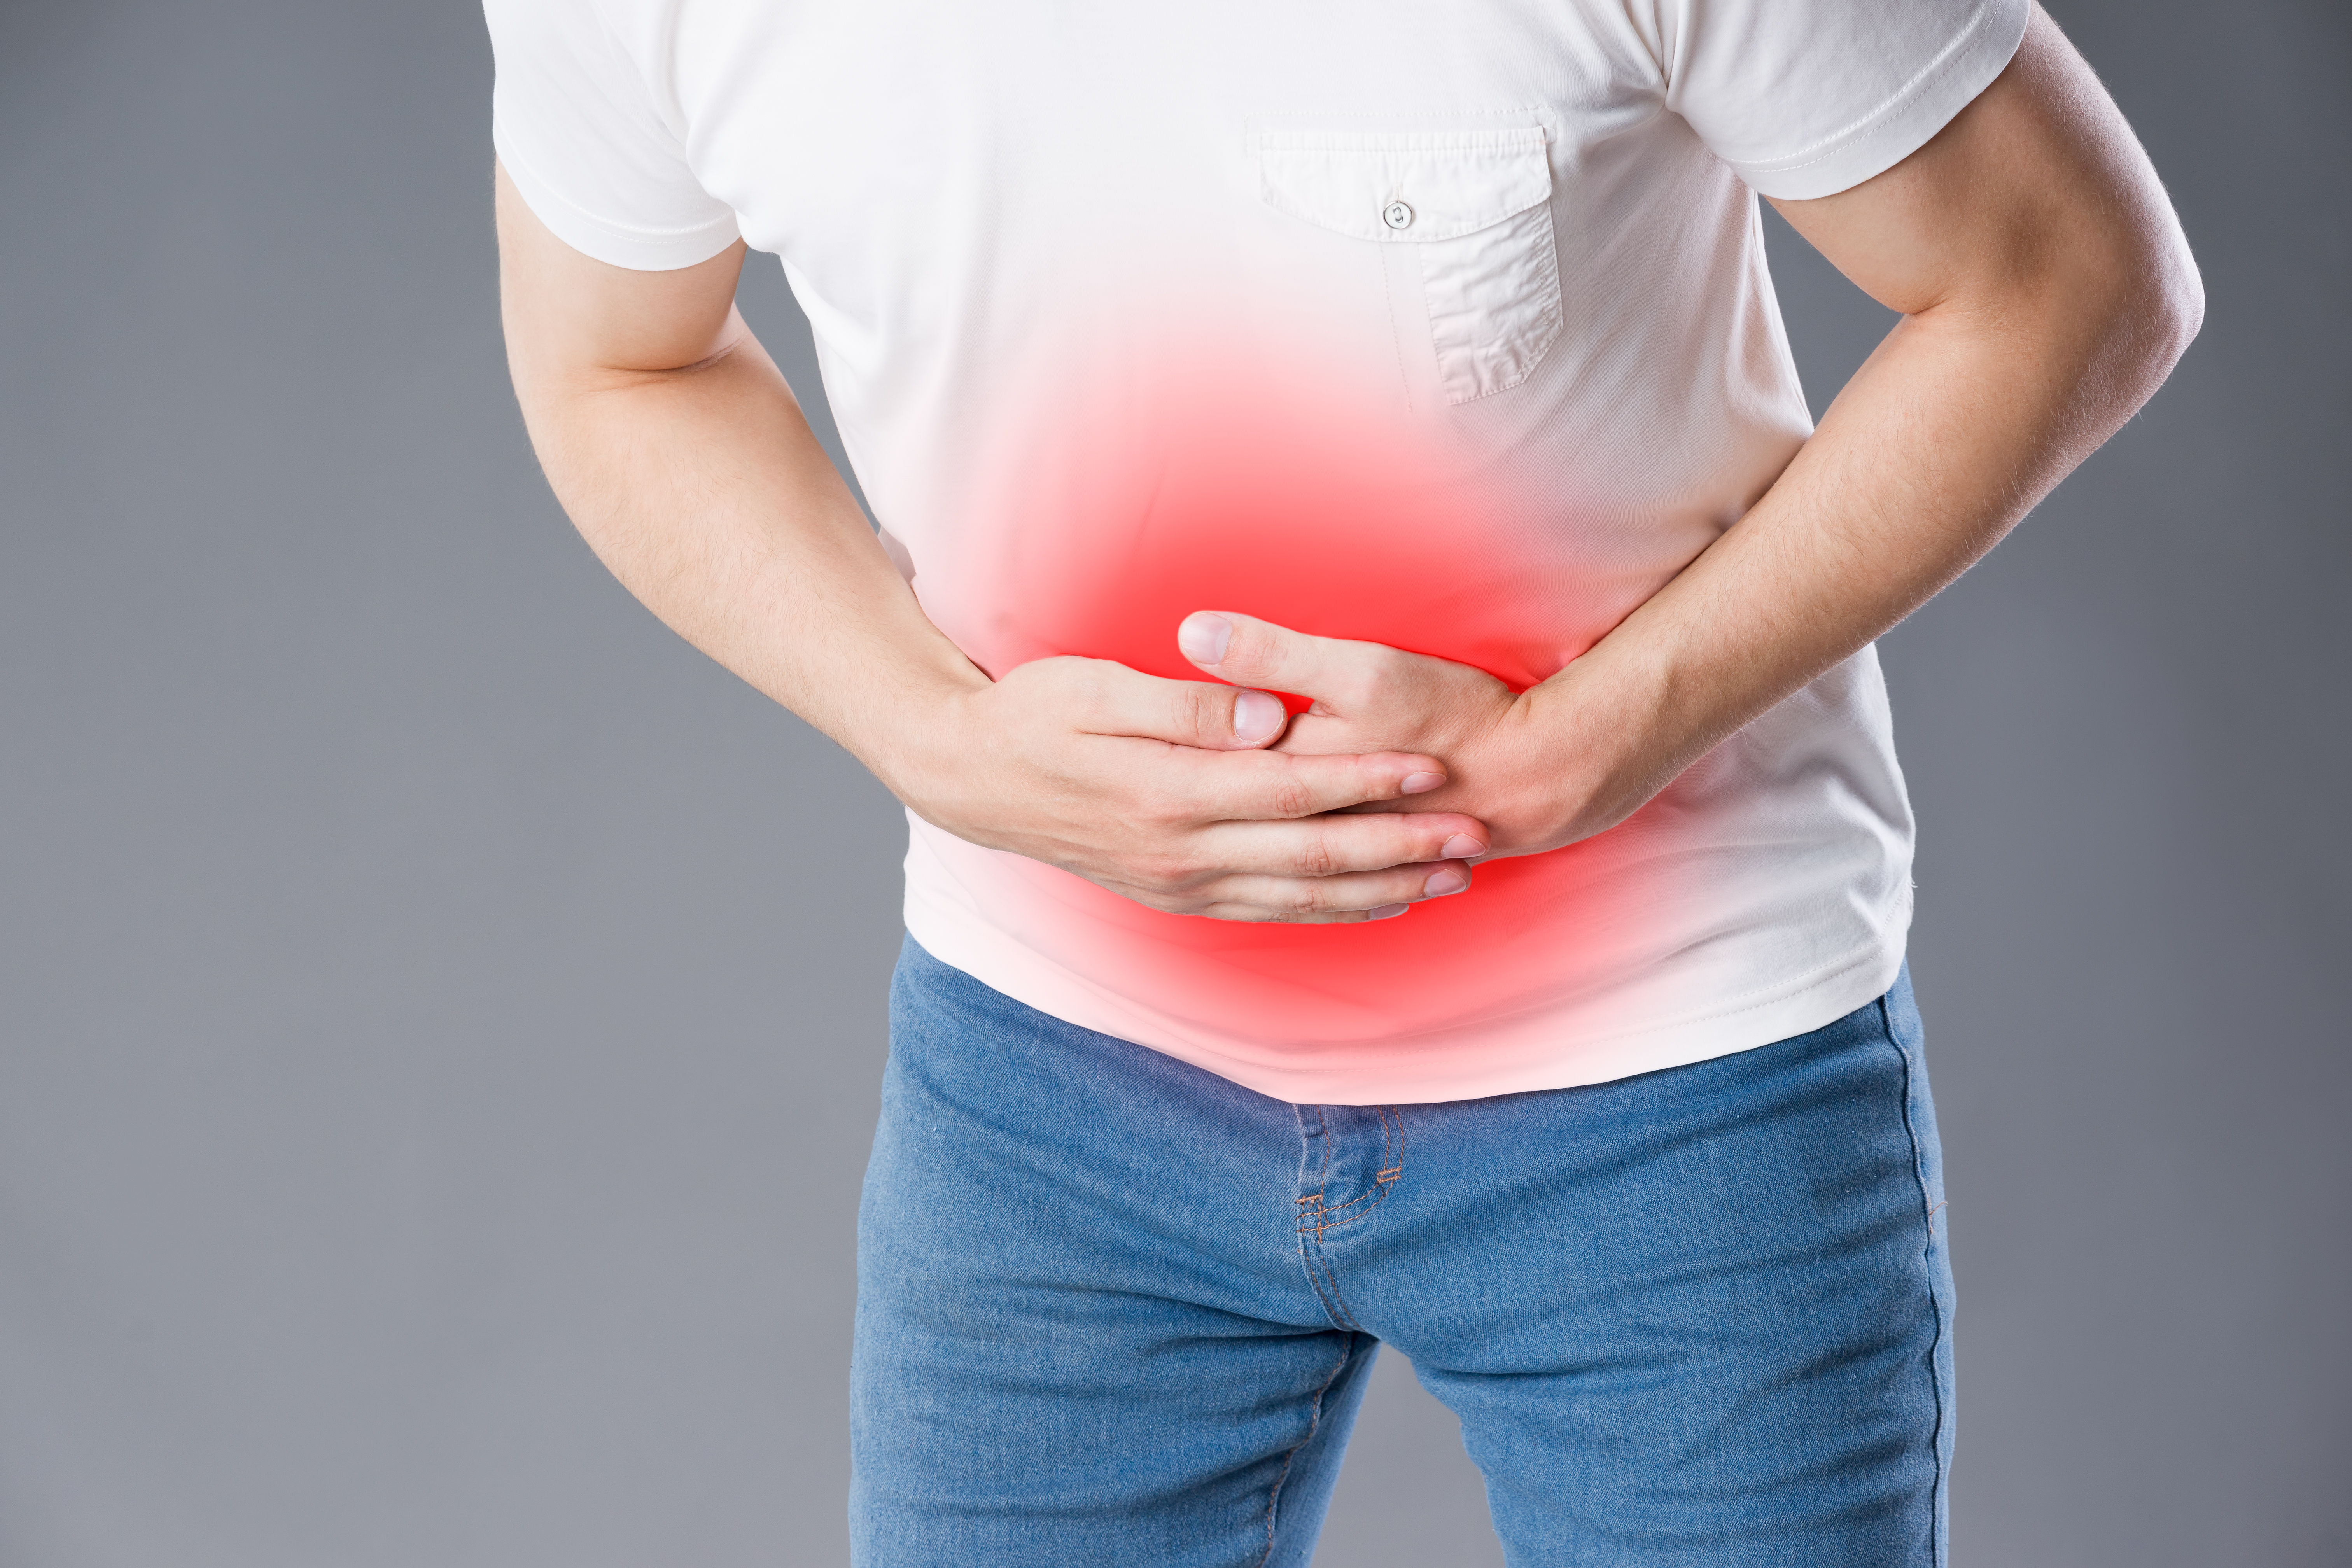 norovirus is a common stomach bug